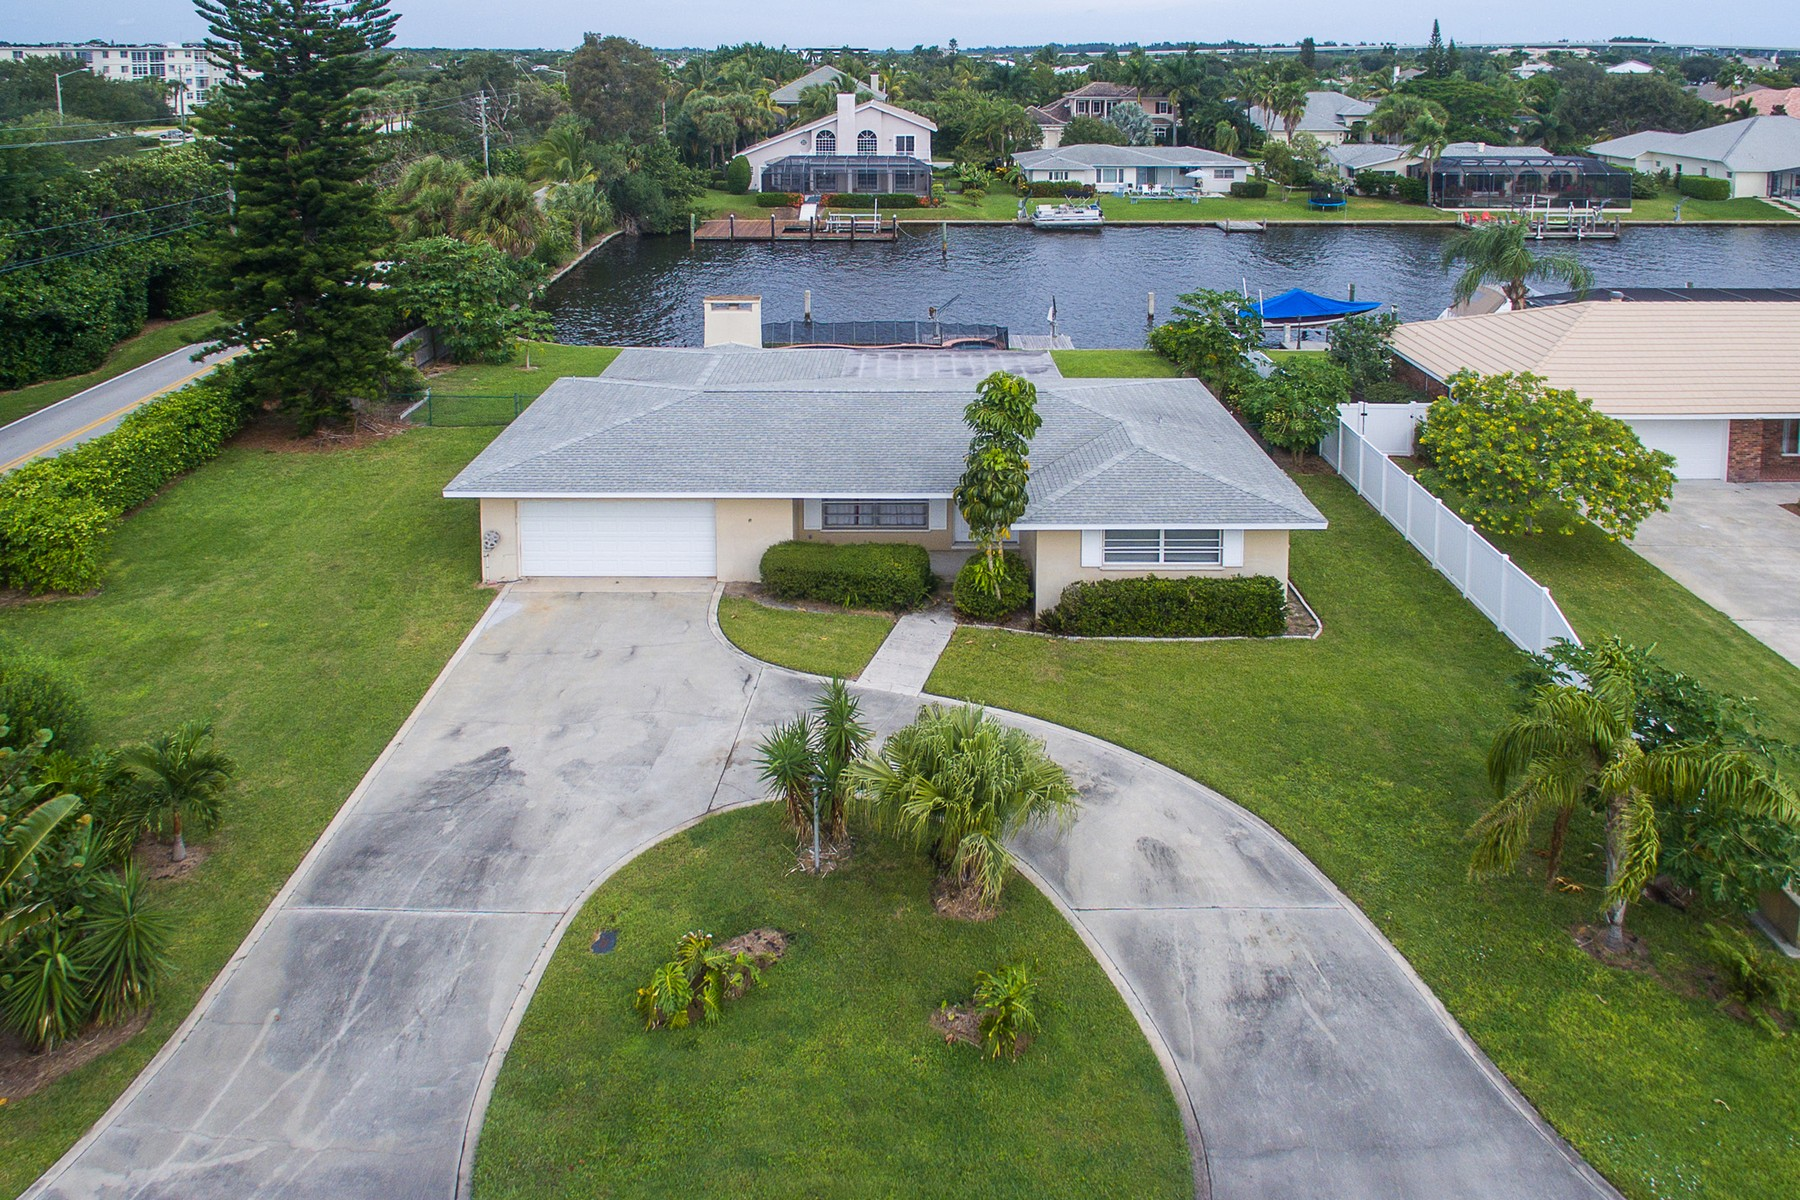 Single Family Home for Sale at Amazing Pool Home with Deep Water Dock 26 Park Avenue Vero Beach, Florida, 32960 United States